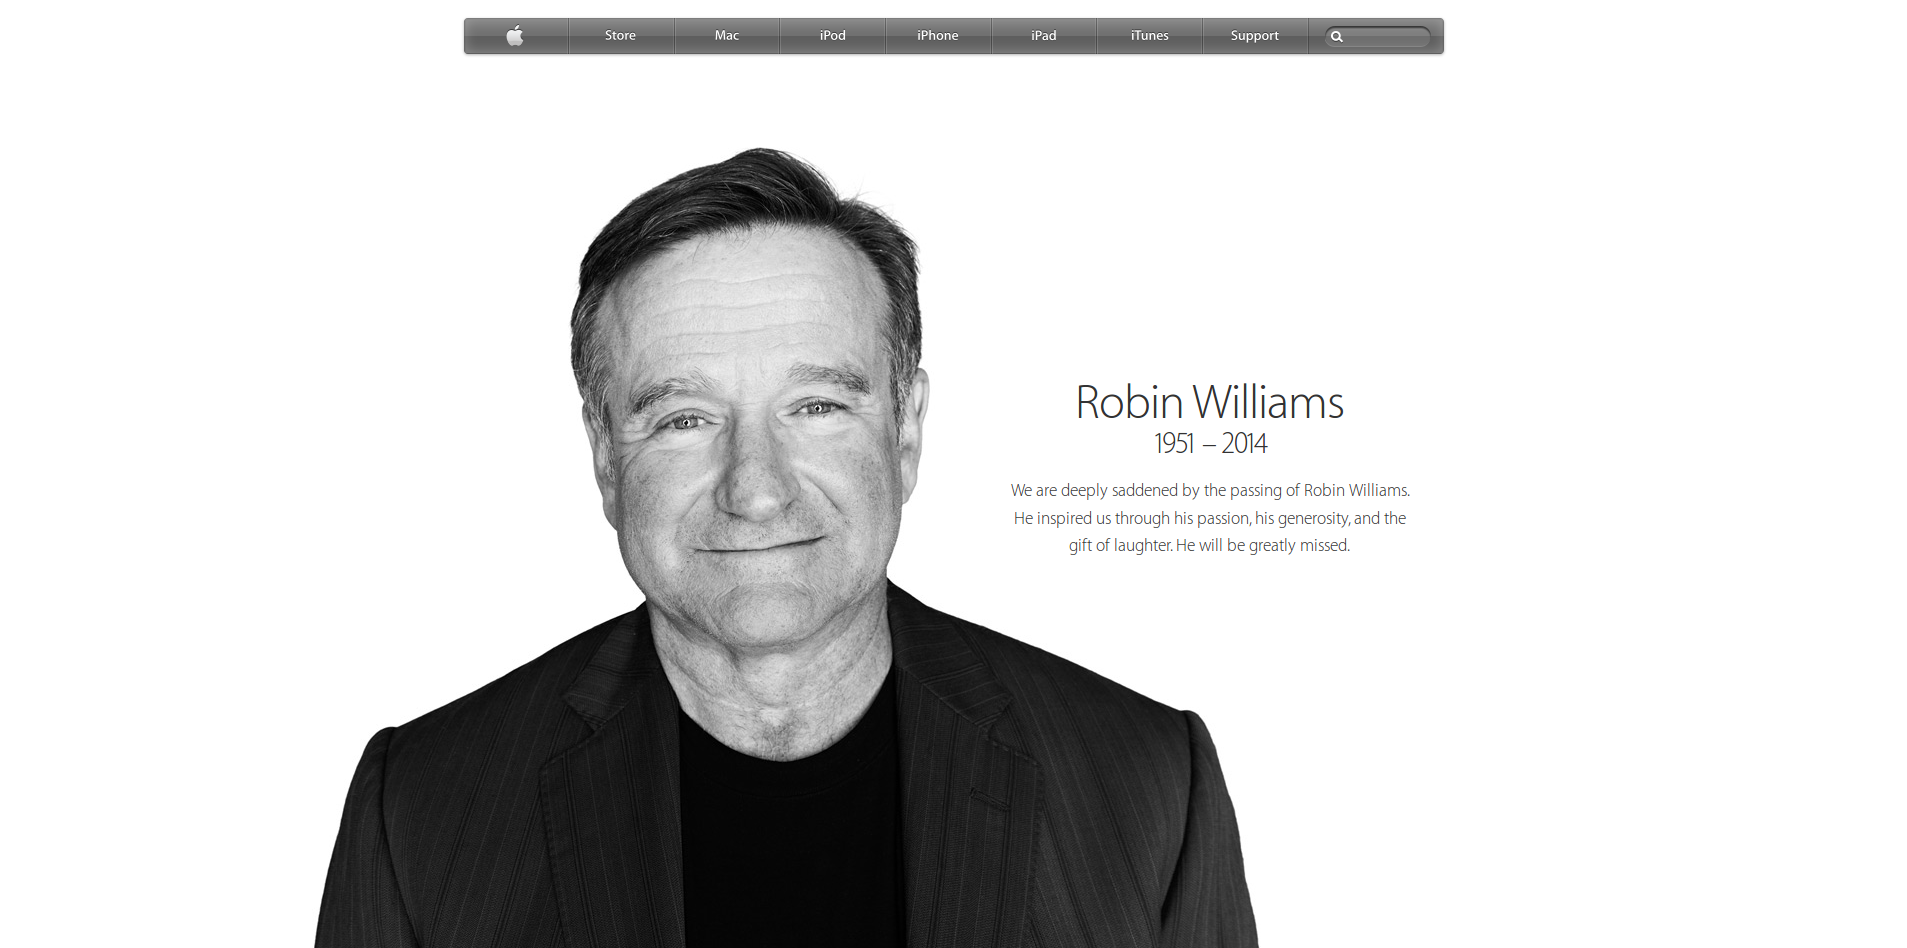 Apple - Remembering Robin Williams